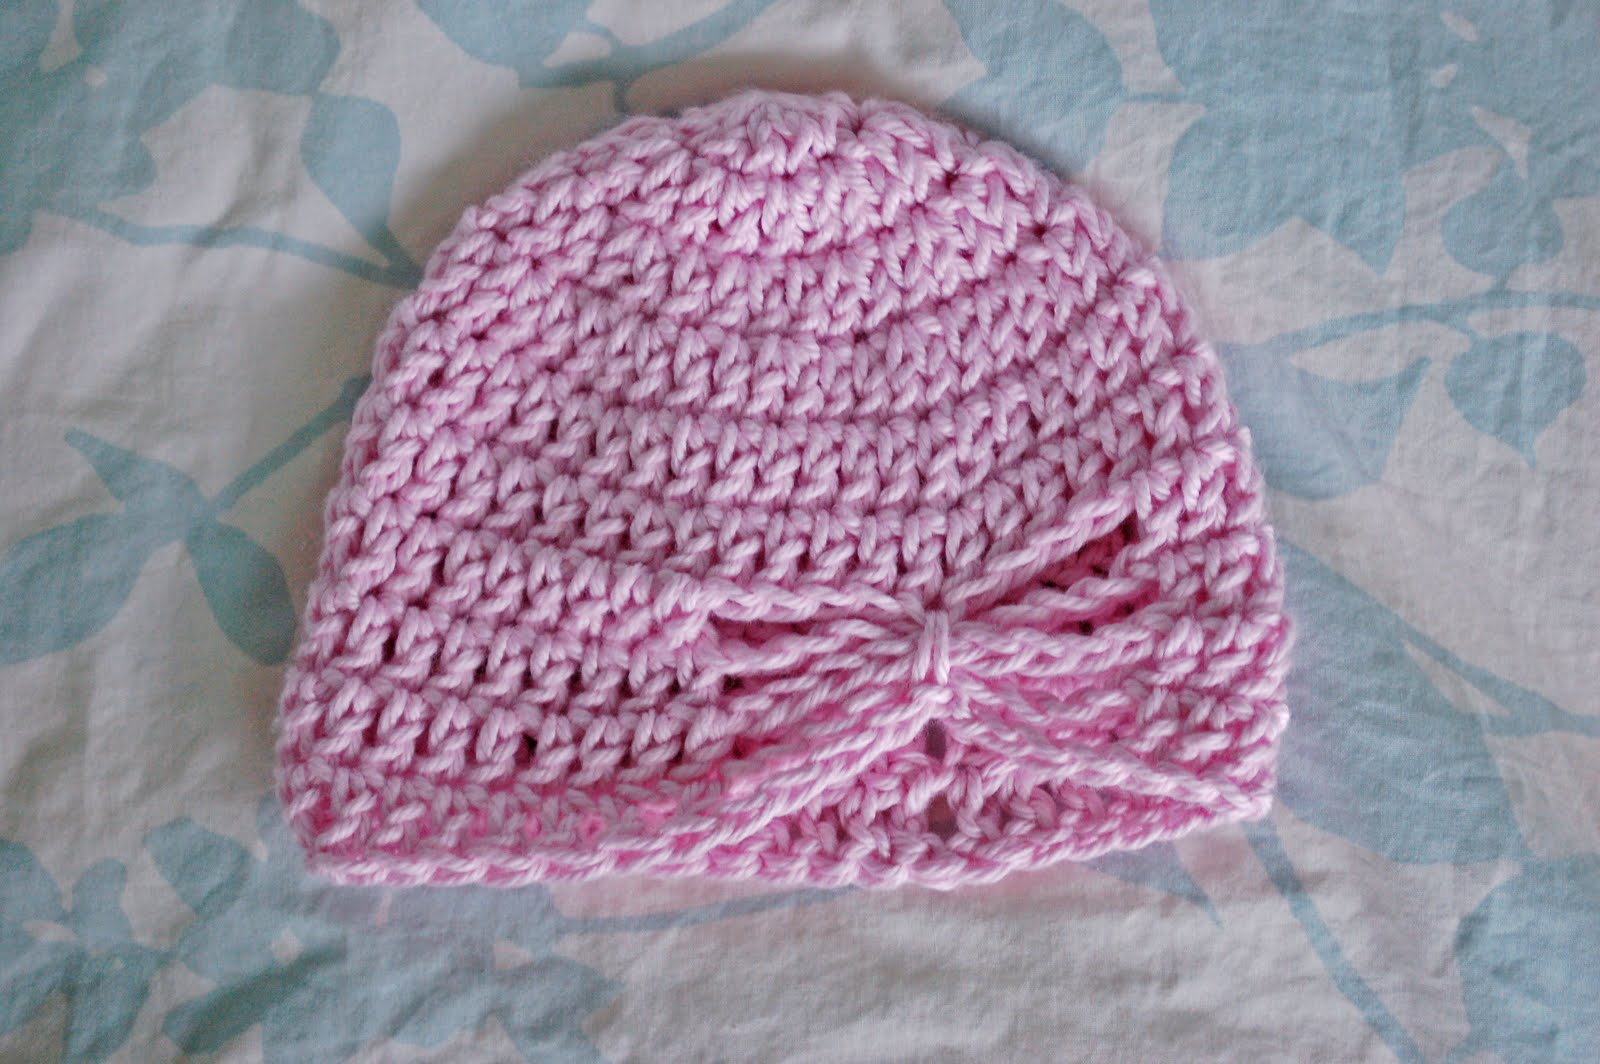 Crochet Pattern Newborn Girl Hat : FREE PATTERN FOR A WORSTED YARN CROCHET A HAT ? Easy ...